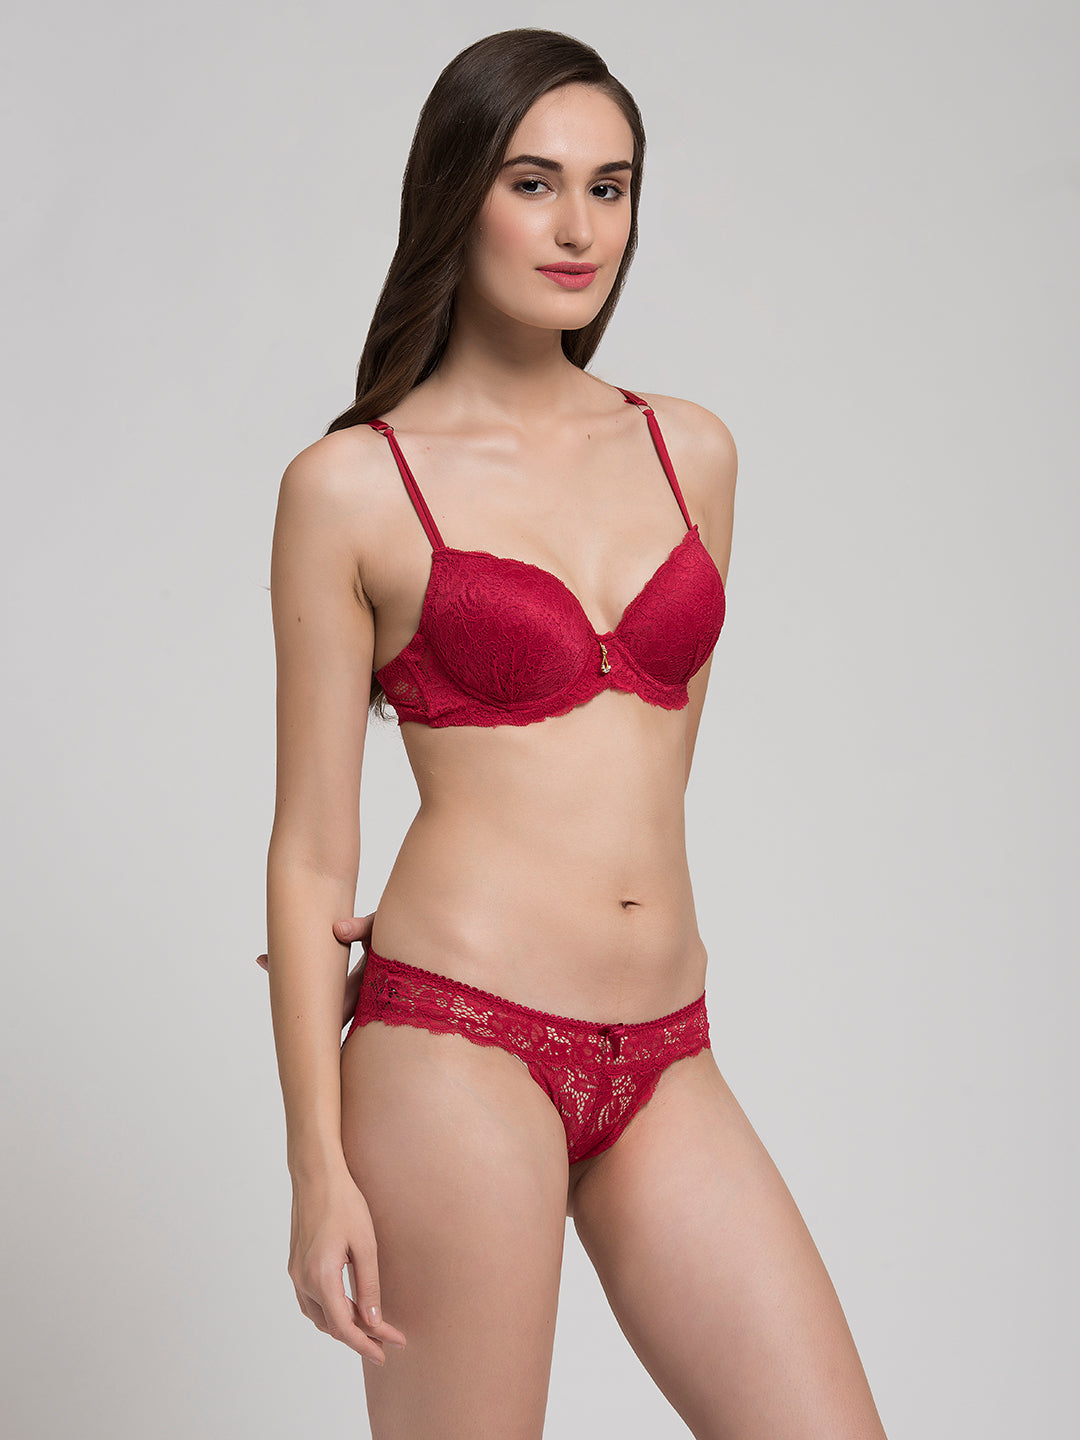 Dreamy Desire Set (34-40B)